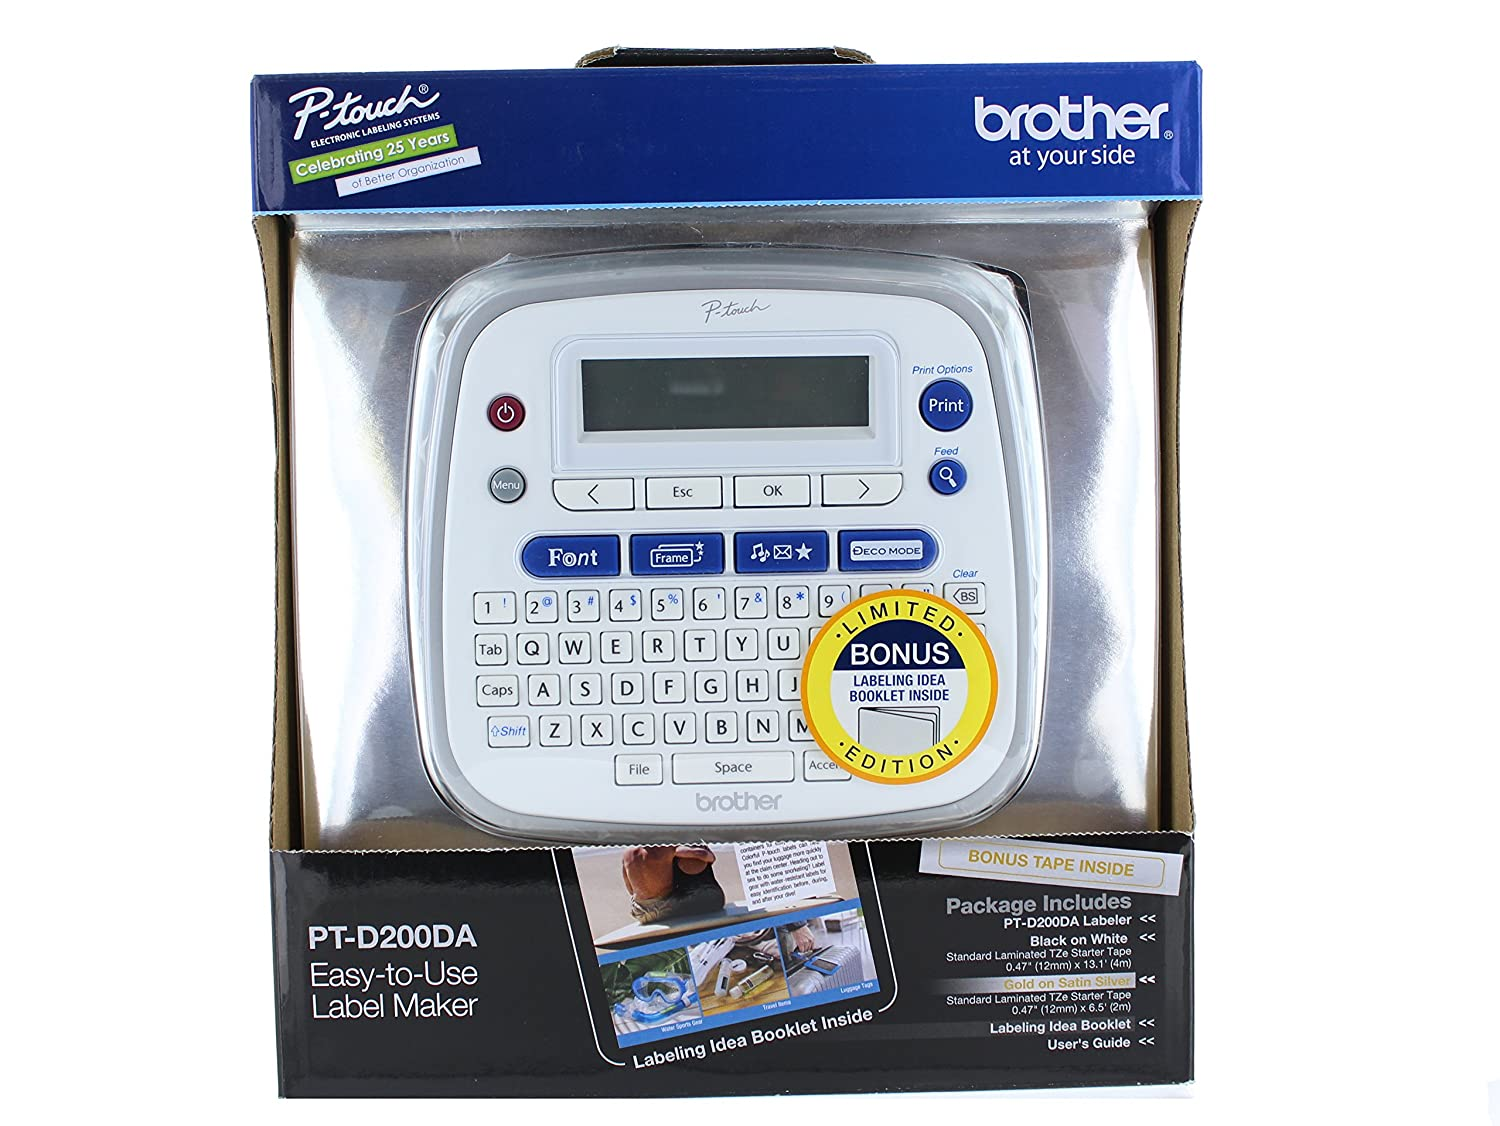 Amazon.com : Brother P-Touch PT-D200DA Label Maker W/ Bonus Tape + ...